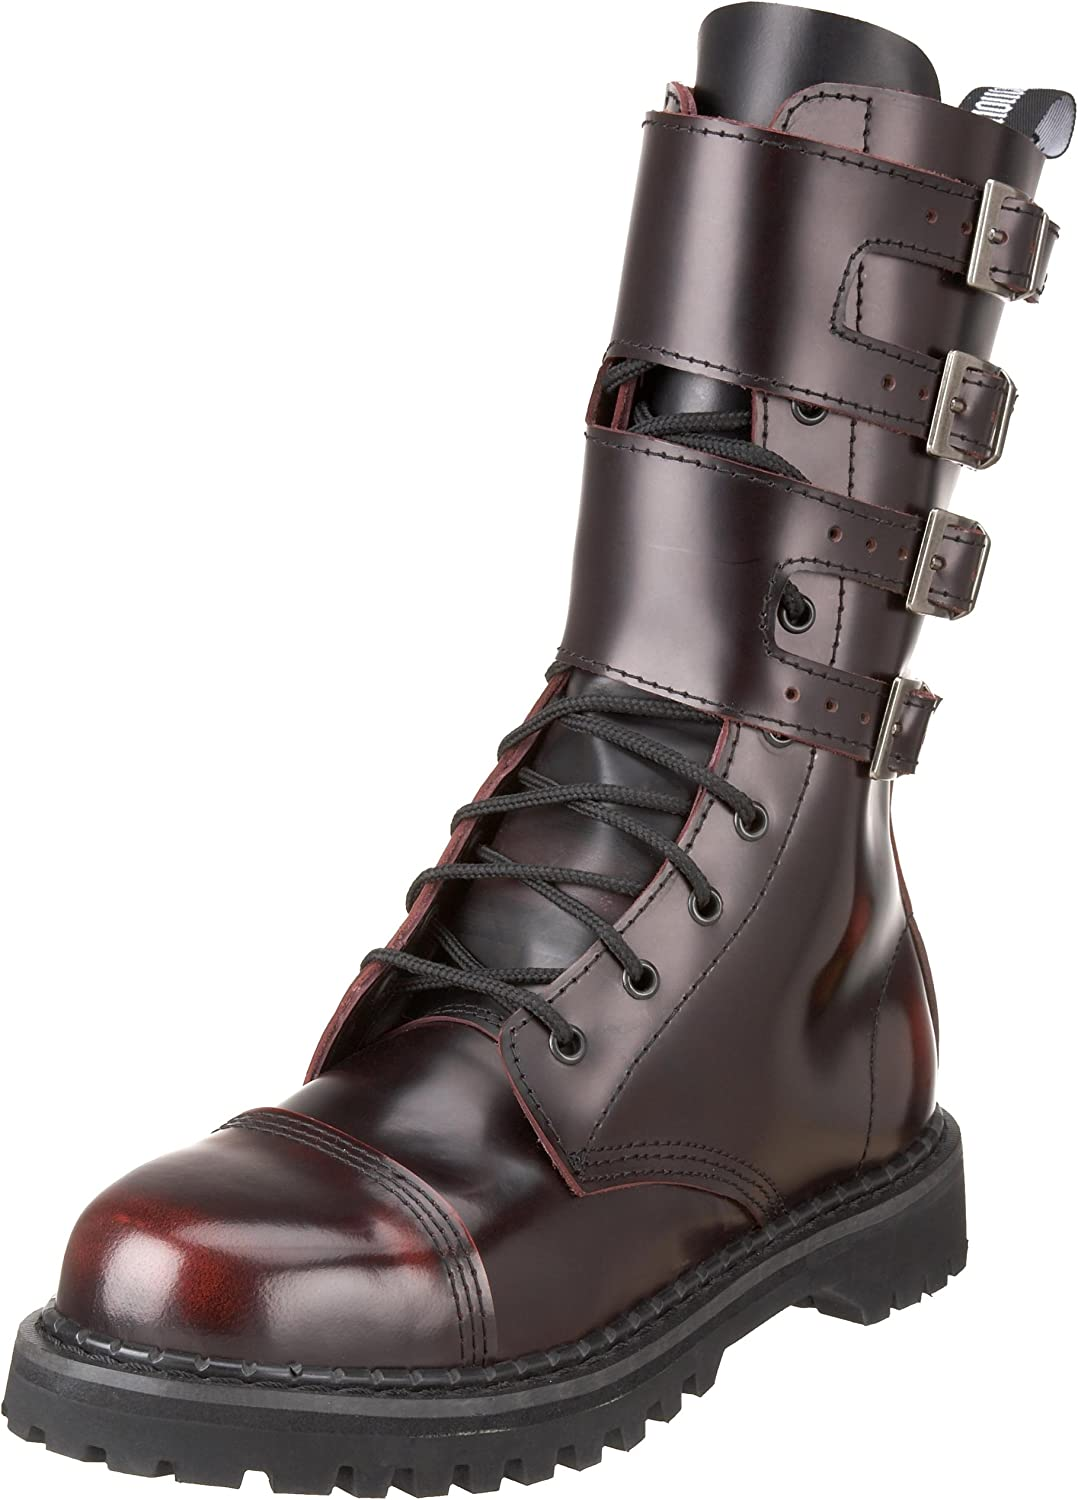 Demonia Attack-10 - gothic punk industrial ranger leather boots 3,5-13